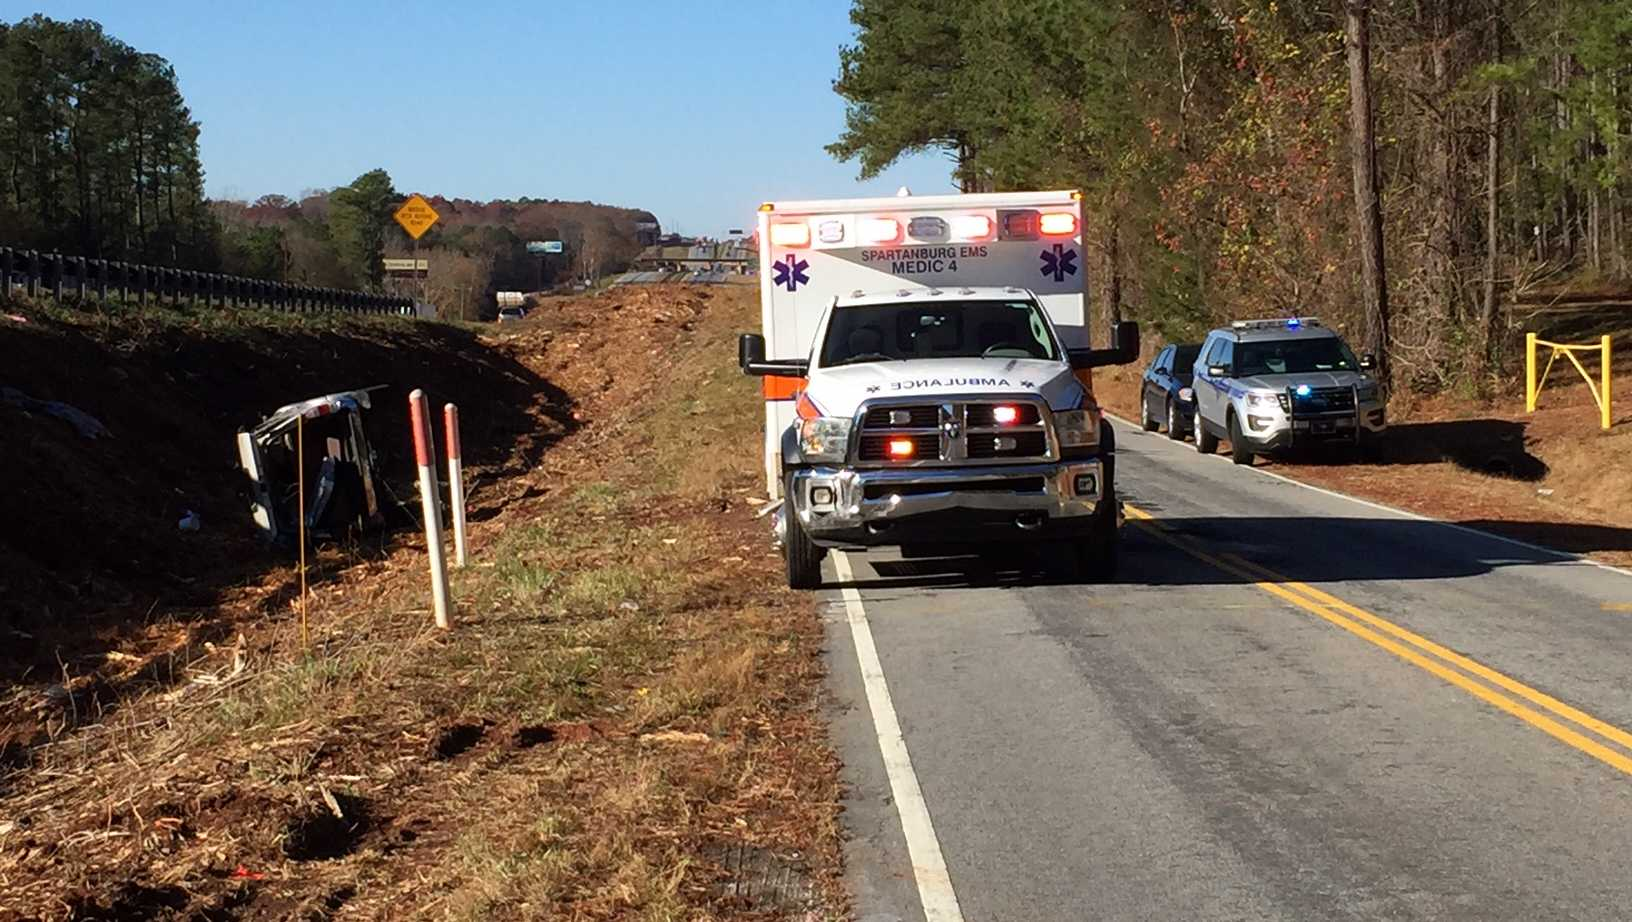 Dewberry Road Spartanburg Co. crash